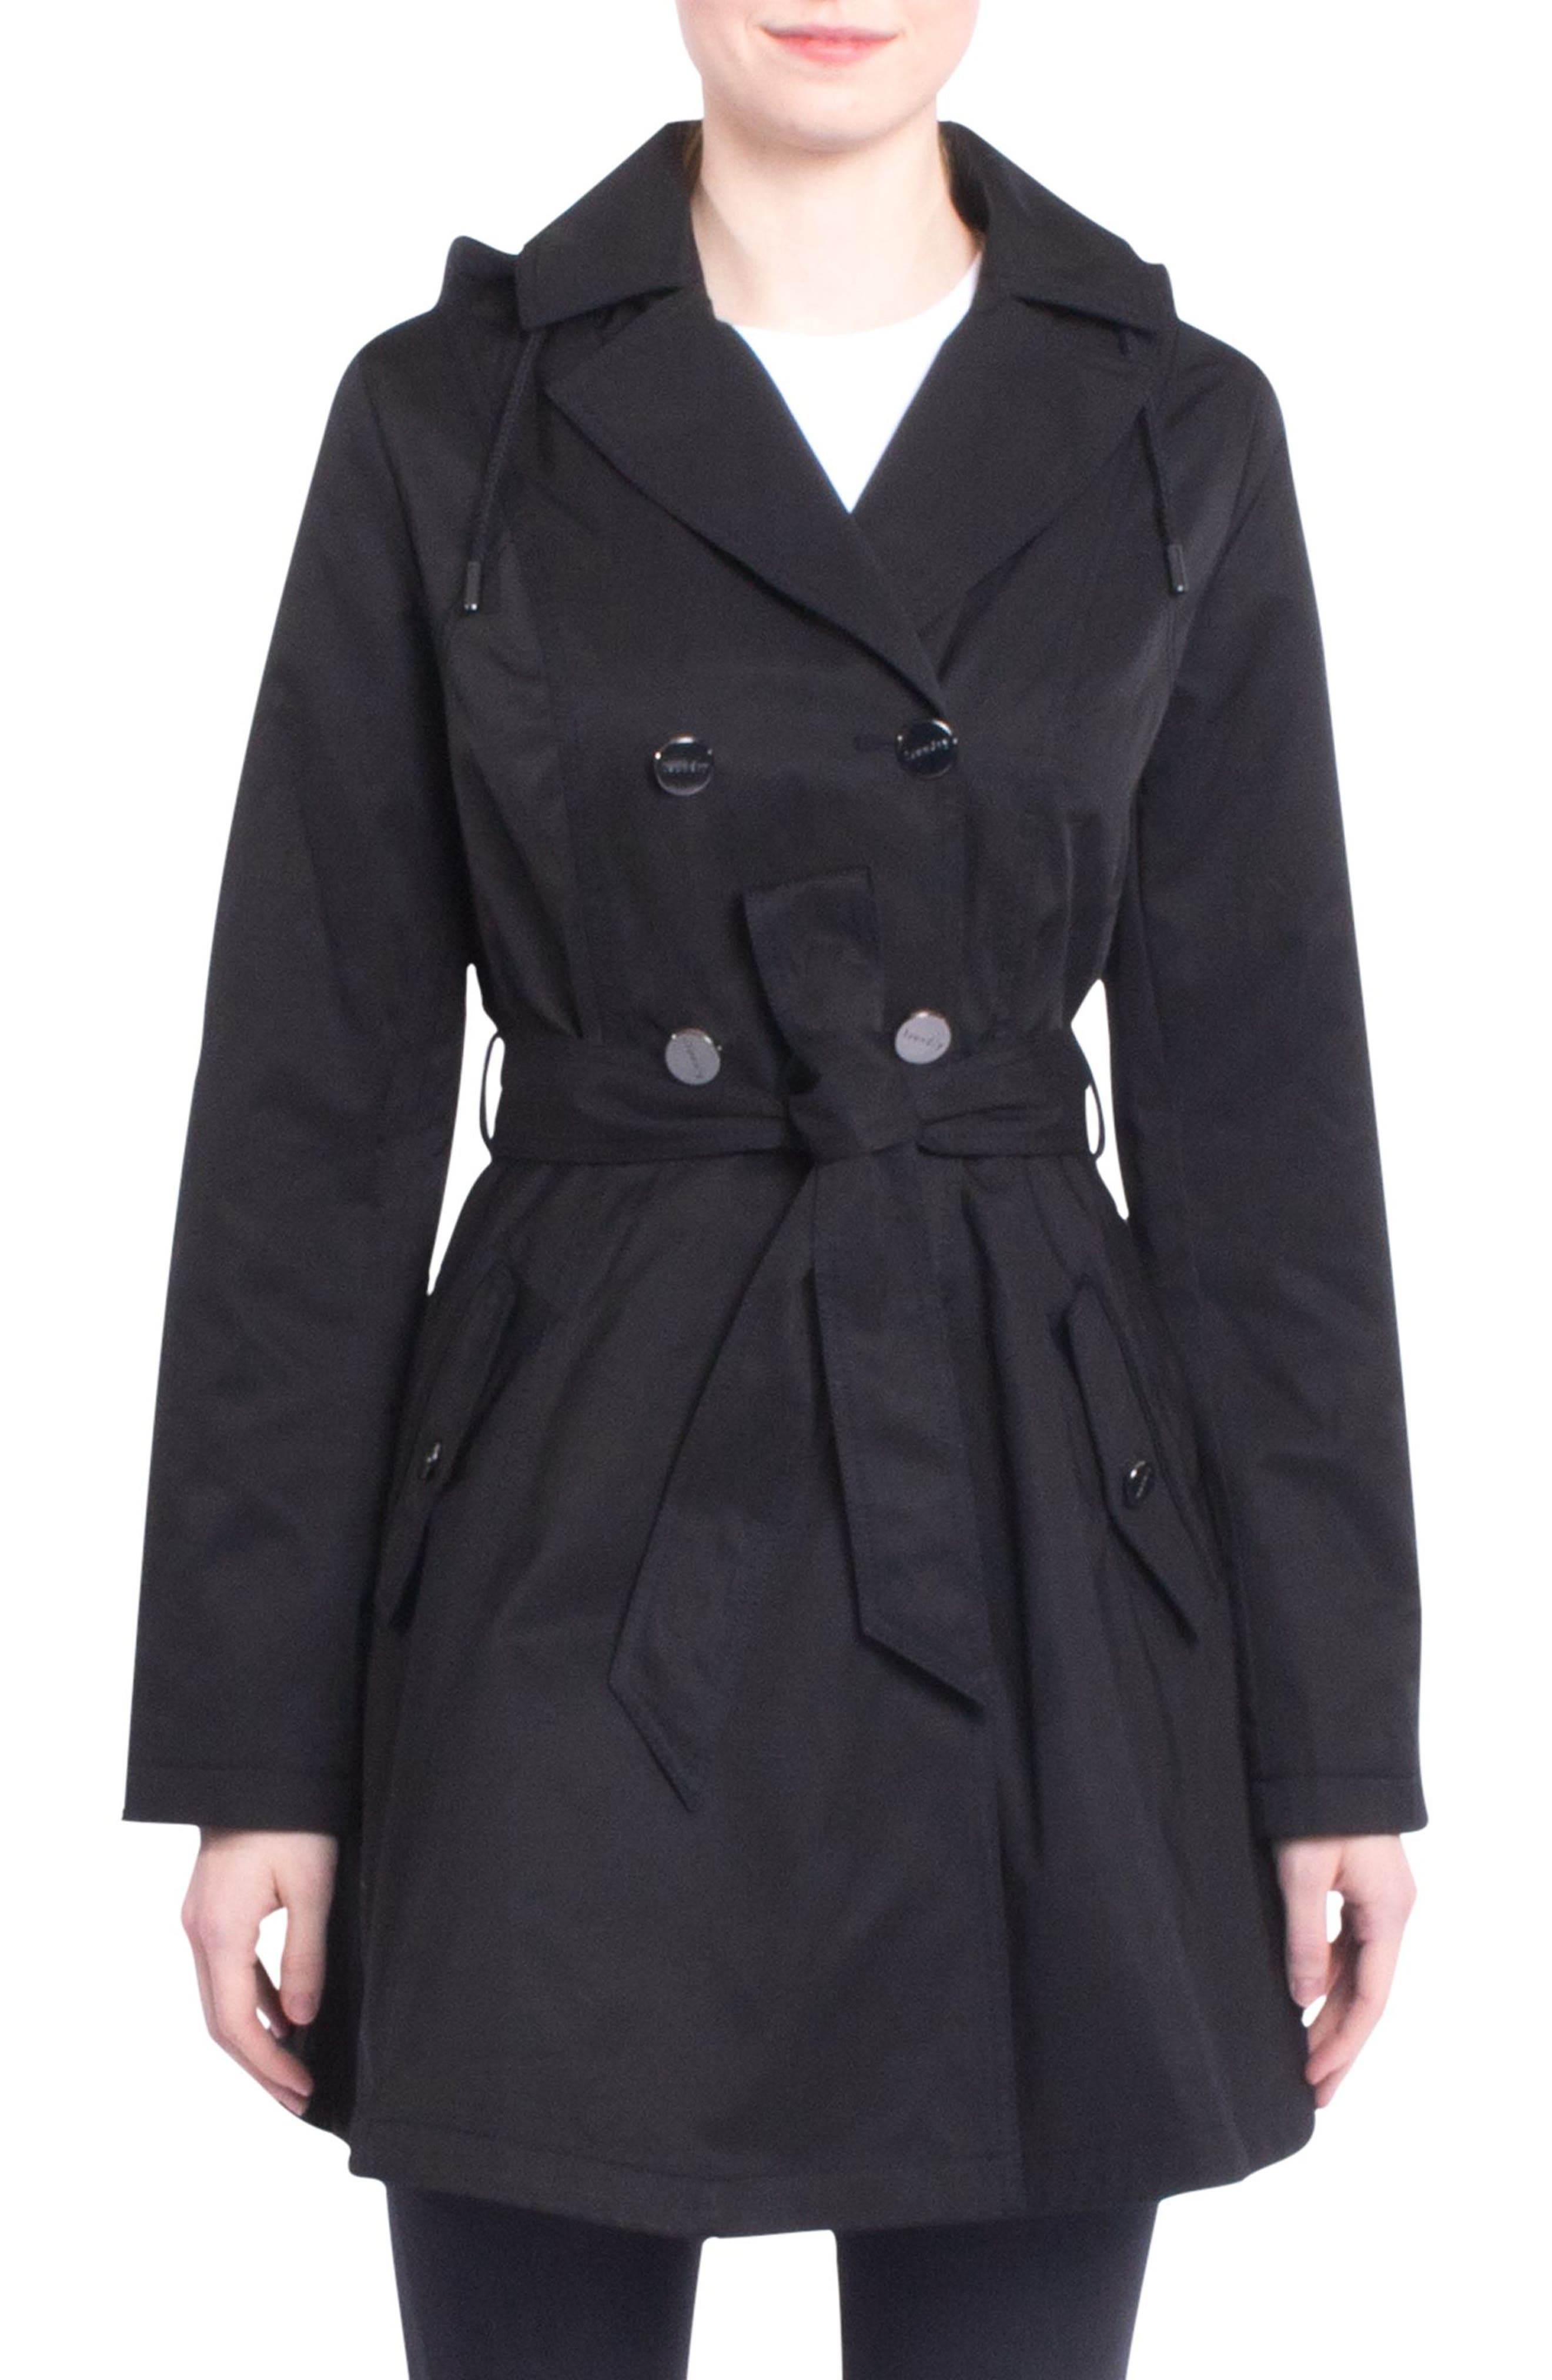 Main Image - Laundry by Shelli Segal Fit & Flare Trench Coat